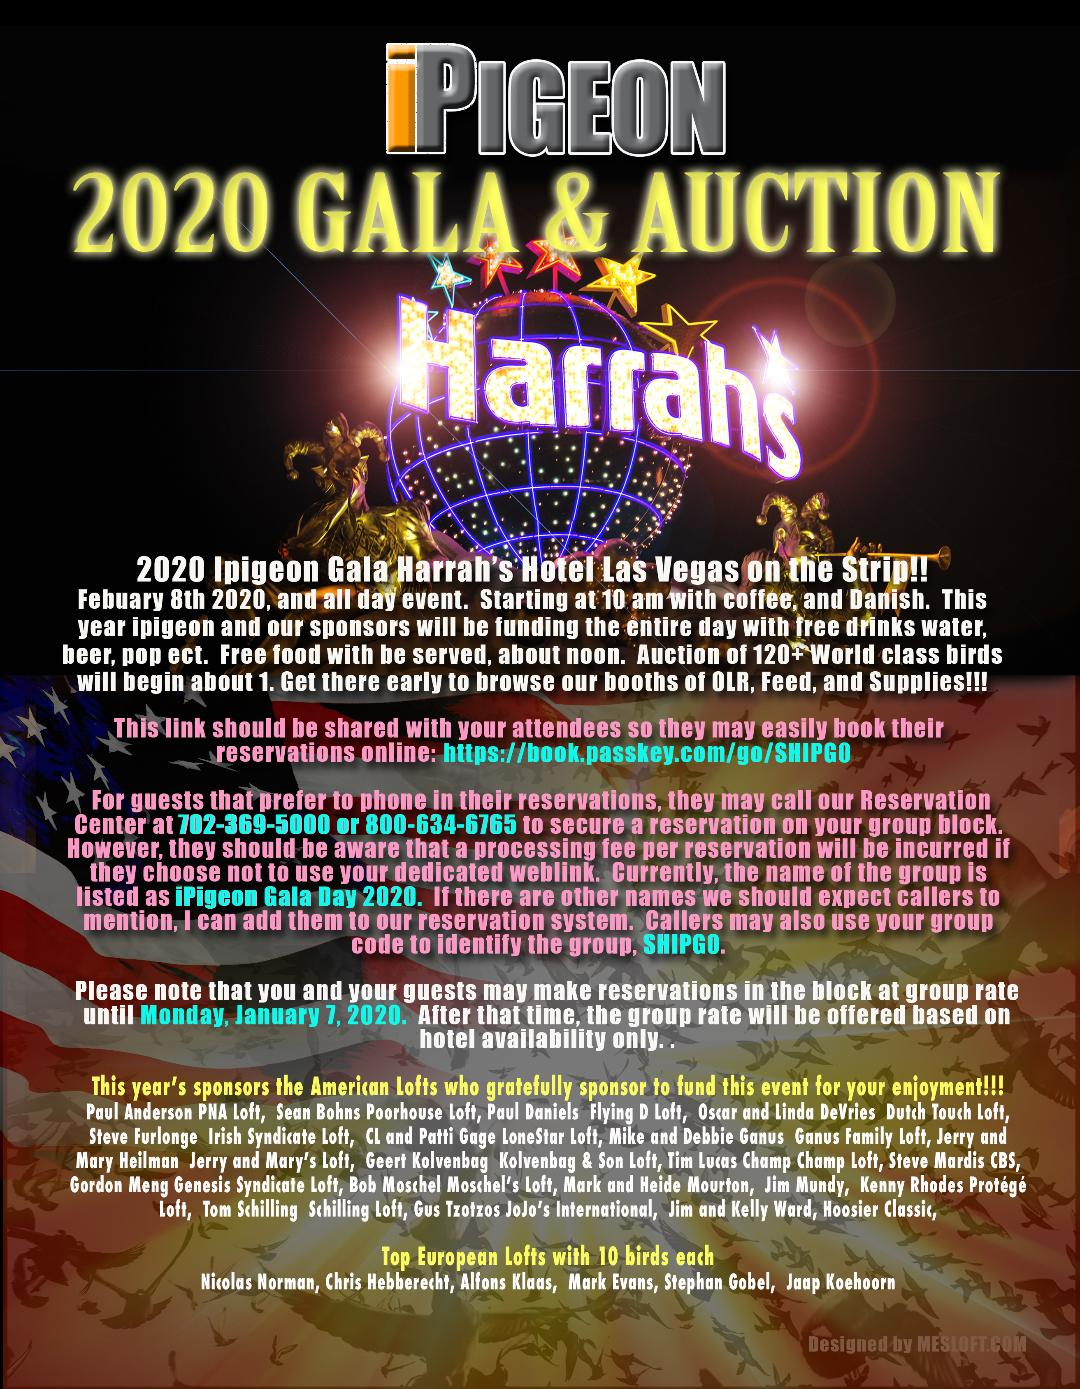 2020 Ipigeon Gala Harrah's Hotel Las Vegas on the Strip!! Febuary 8th 2020, and all day event.